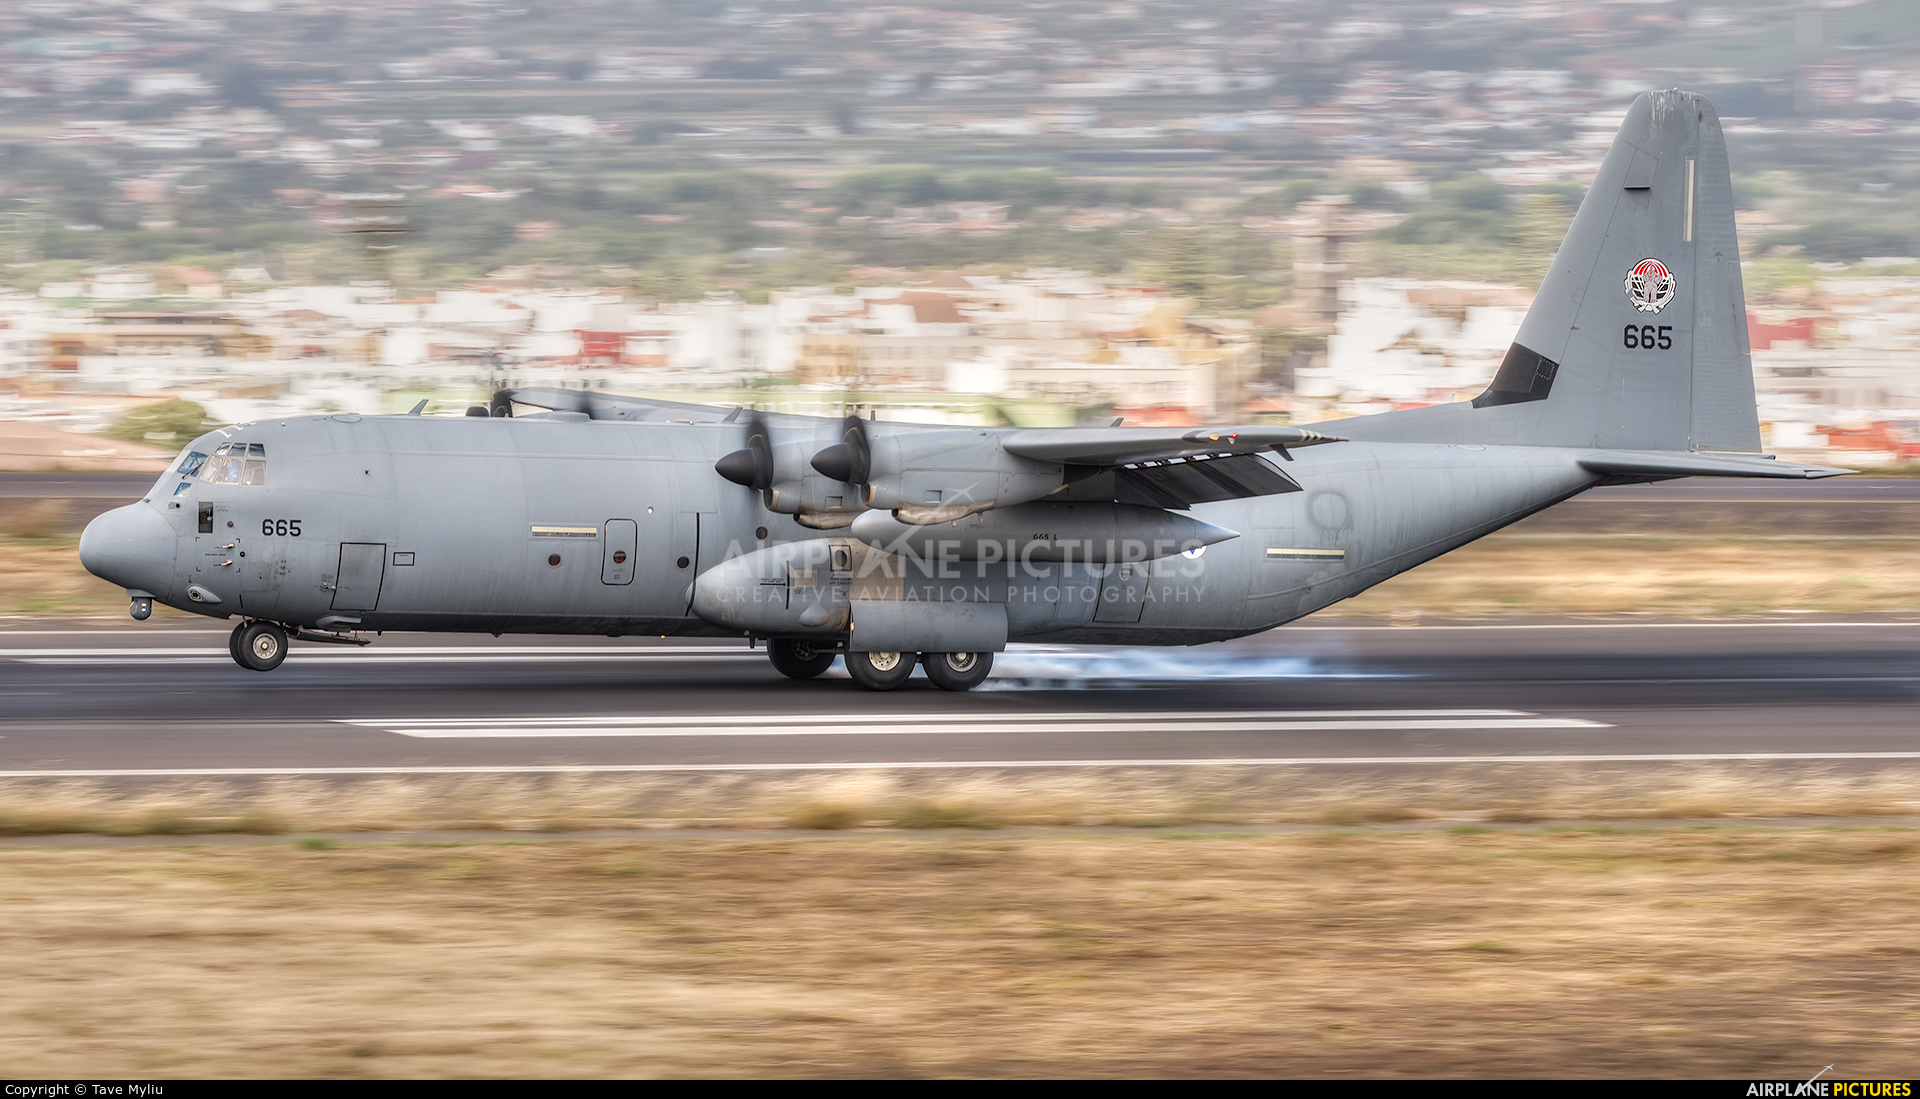 Israel - Defence Force 4X-665 aircraft at Tenerife Norte - Los Rodeos